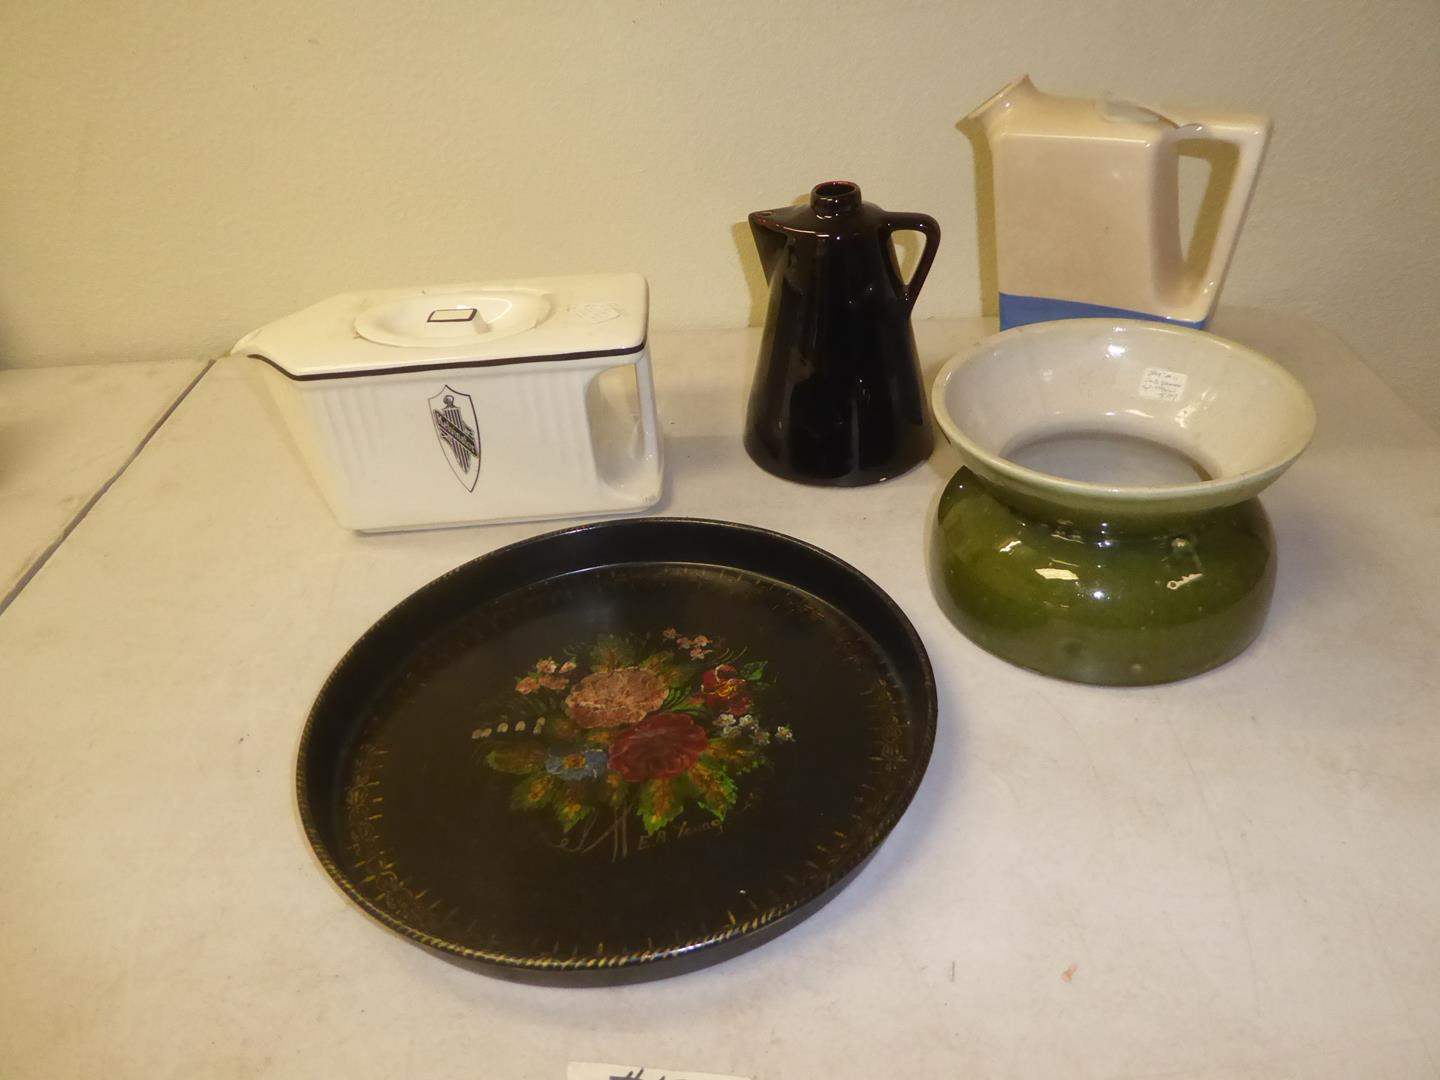 Lot # 131 - Vintage Hand Painted by E.A. Young Tray, Kelvinator Milk Box, Syrup Pitcher, Jug & Old Spittoon (main image)